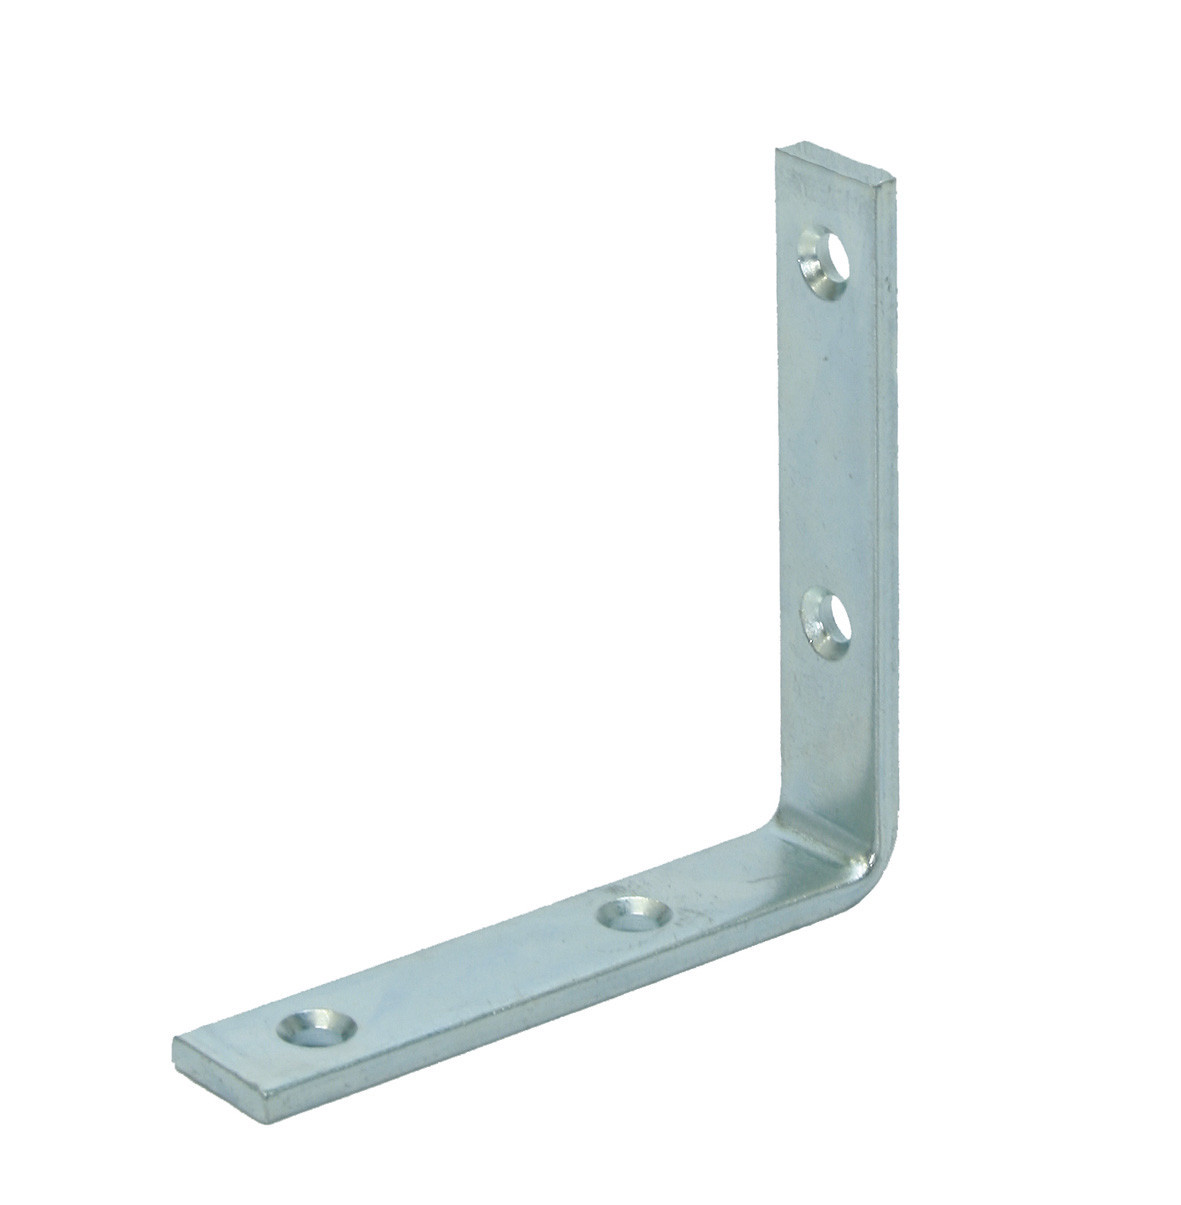 Angle bracket heavy duty 100x100 20x4,5 EV